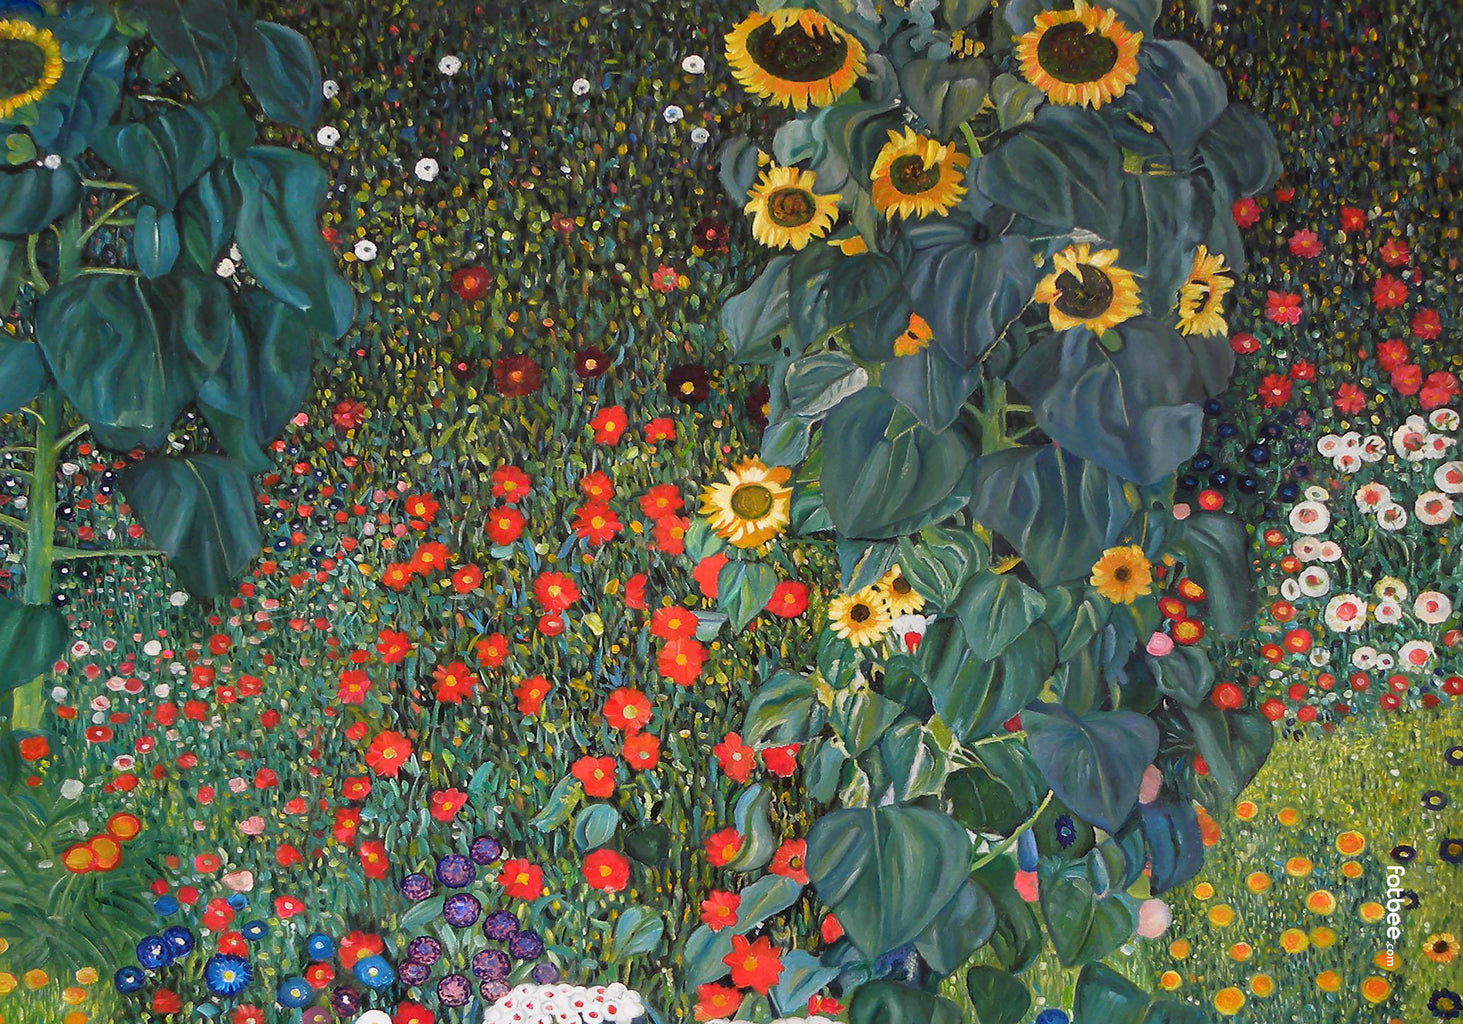 Gustav Klimt - Garden with Sunflowers